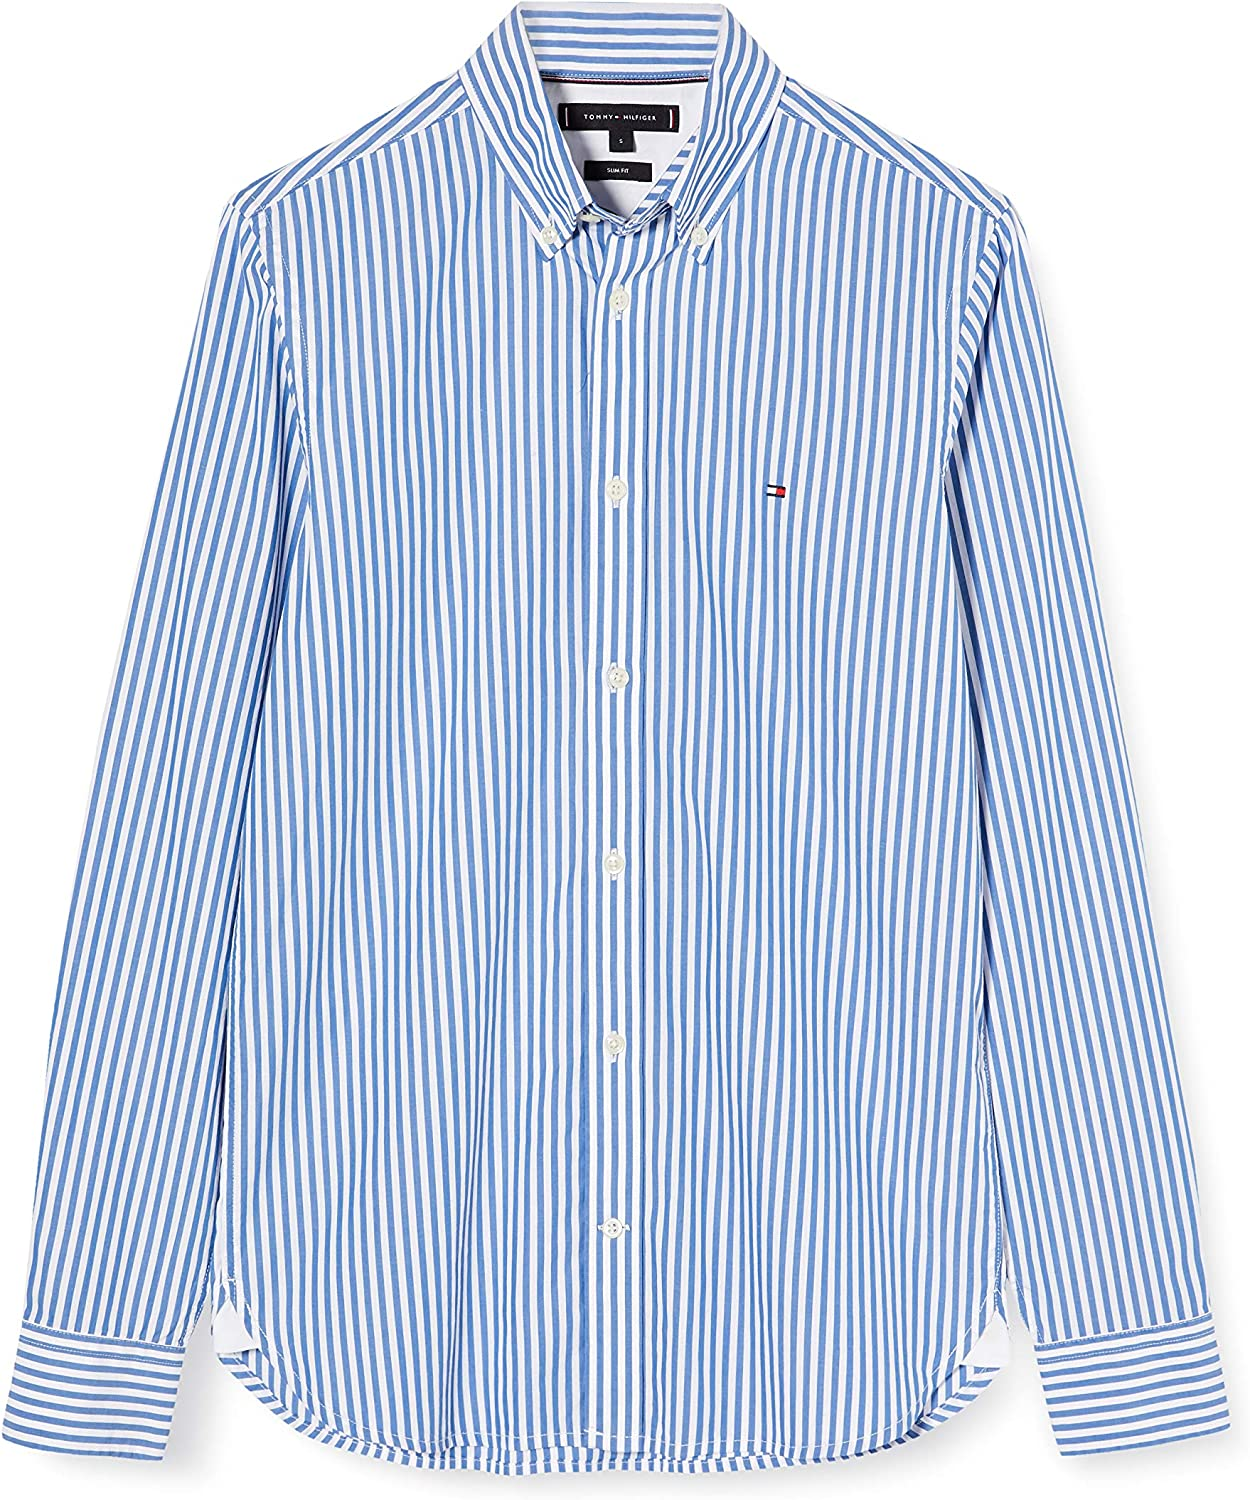 Tommy Hilfiger Hyper Classic Stripe Shirt Camisa para Hombre